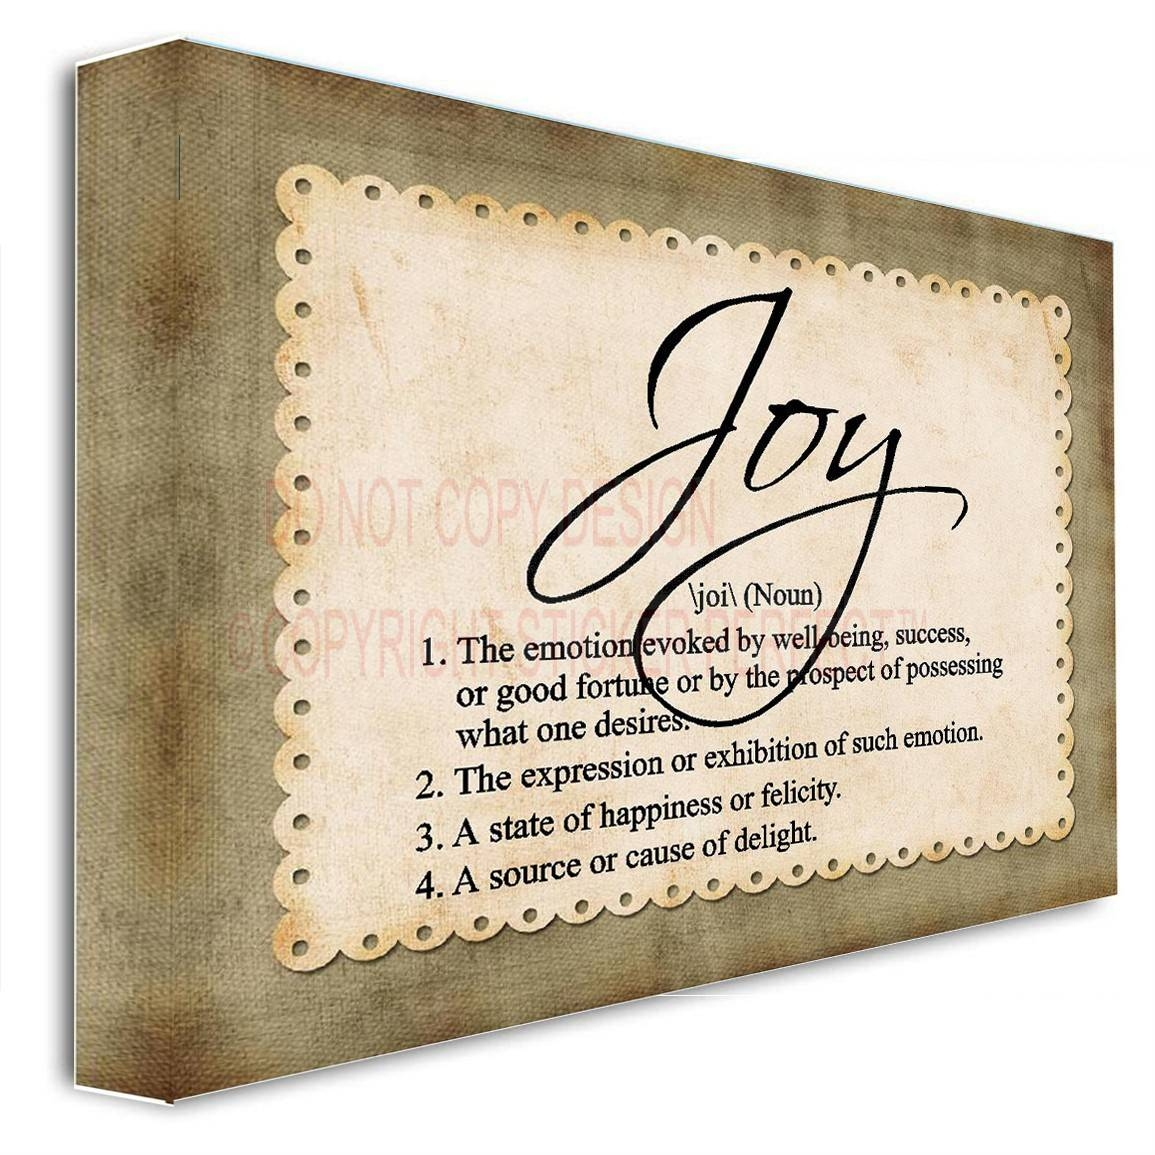 Framed Canvas Print Joy (Noun) Definition Inspirational Wall Art Intended For 2018 Inspirational Wall Plaques (View 4 of 20)